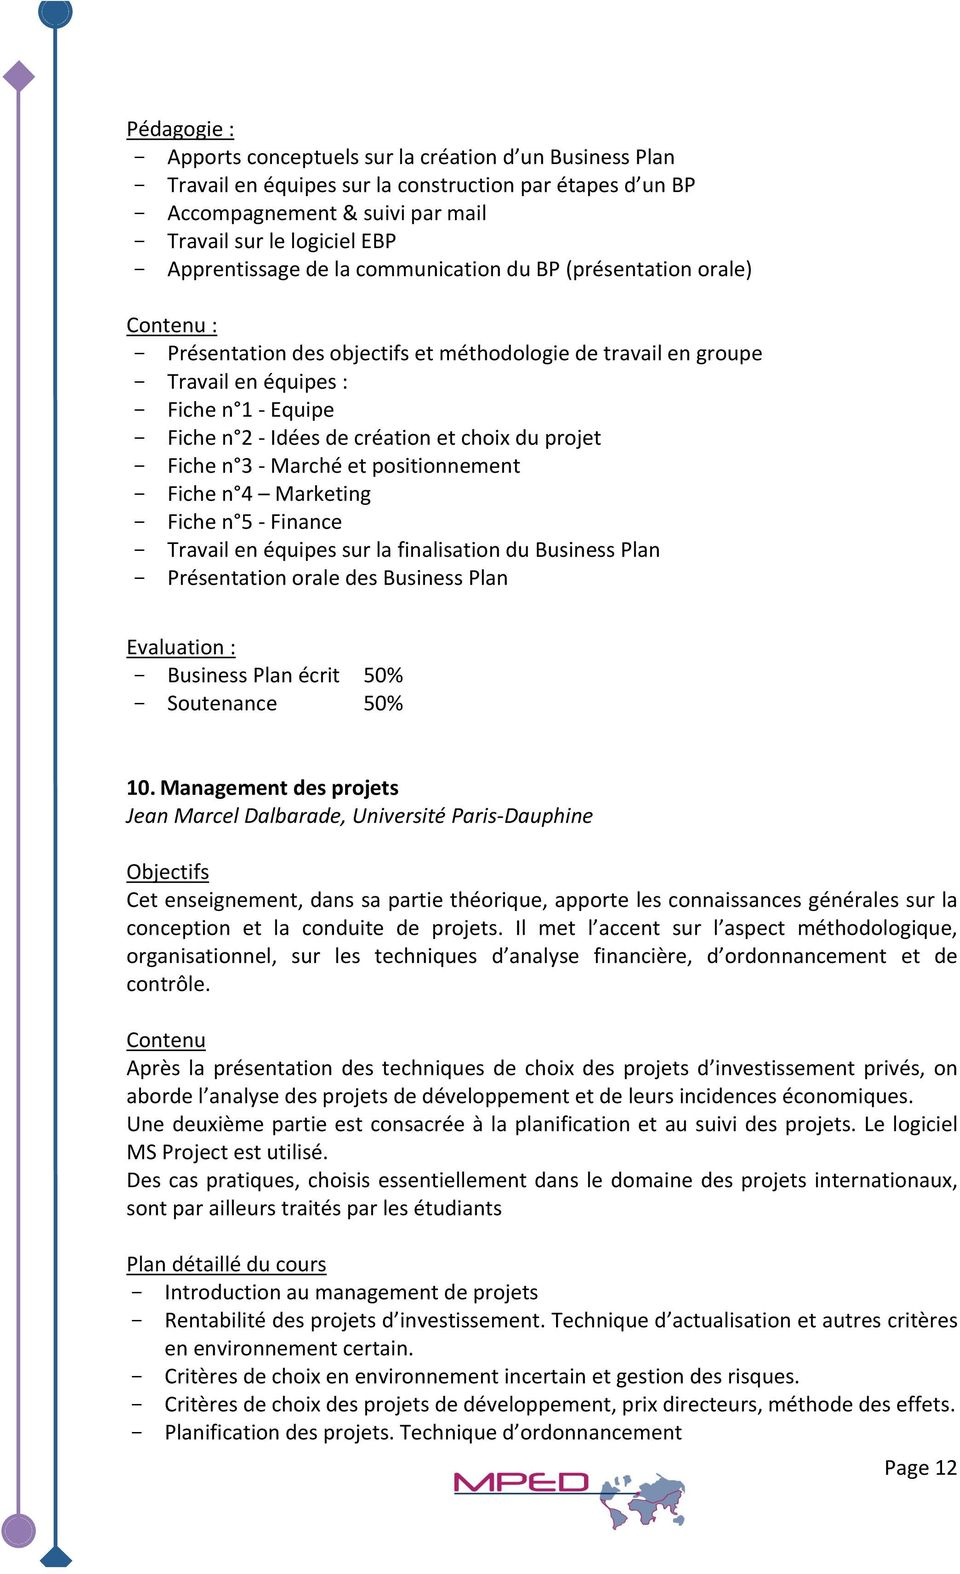 Idéesdecréationetchoixduprojet - Fichen 3 Marchéetpositionnement - Fichen 4 Marketing - Fichen 5 Finance - TravailenéquipessurlafinalisationduBusinessPlan - PrésentationoraledesBusinessPlan